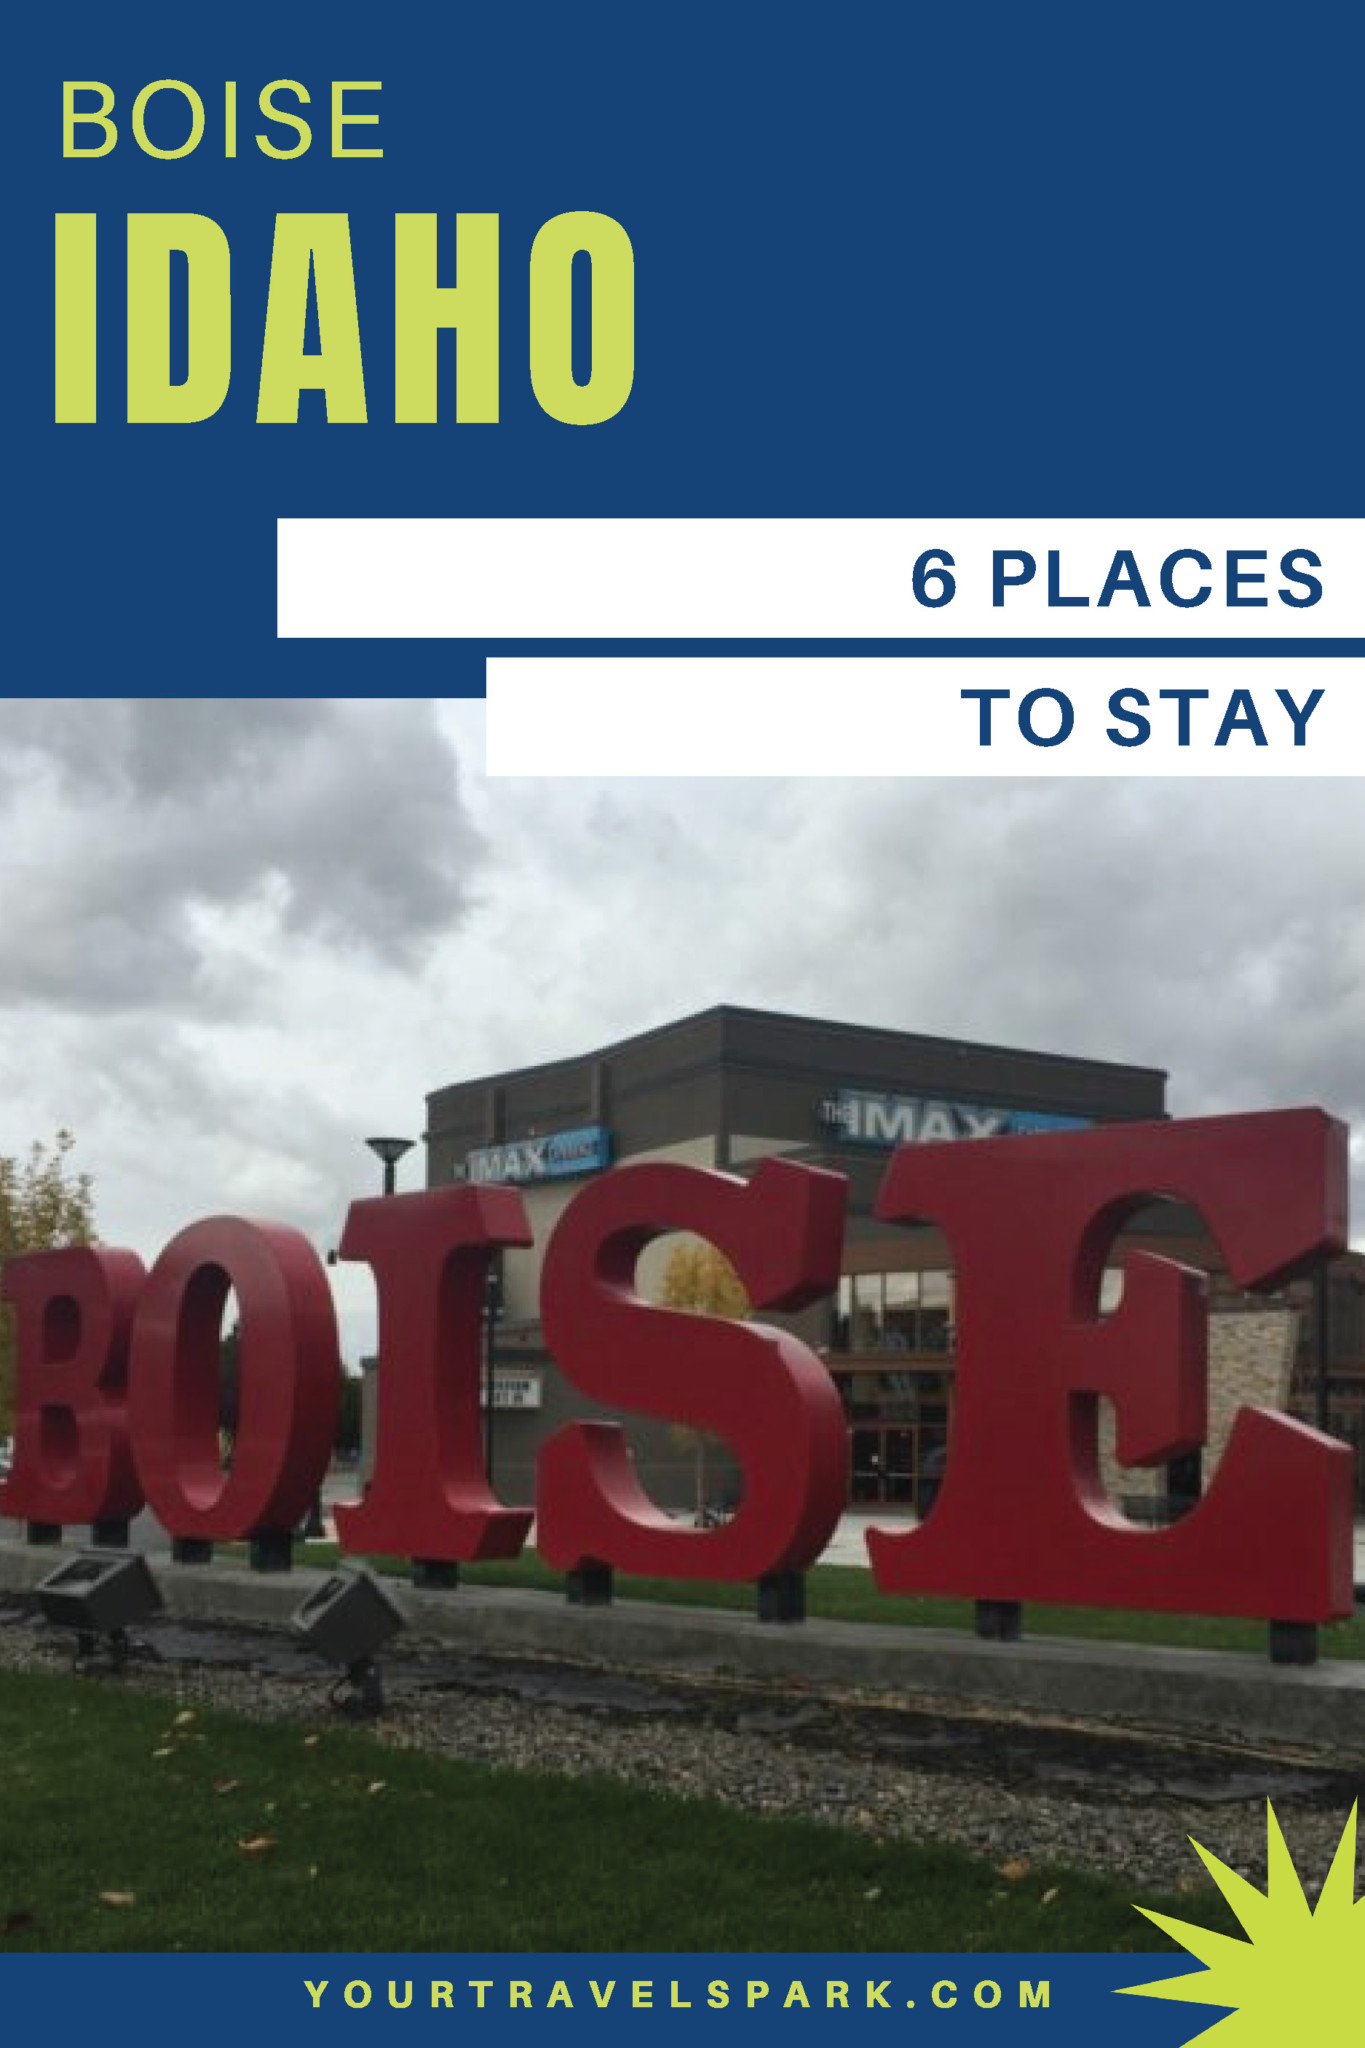 Boise, Idaho is becoming a great destination to visit - whether it be for skiing, breweries, or nightlife. Here are our favorite places to stay in Boise, Idaho. #boise #idaho #boiseidaho #boiseid #potatoes #placestostay #placestostayinboise #lesbois #cityoftrees